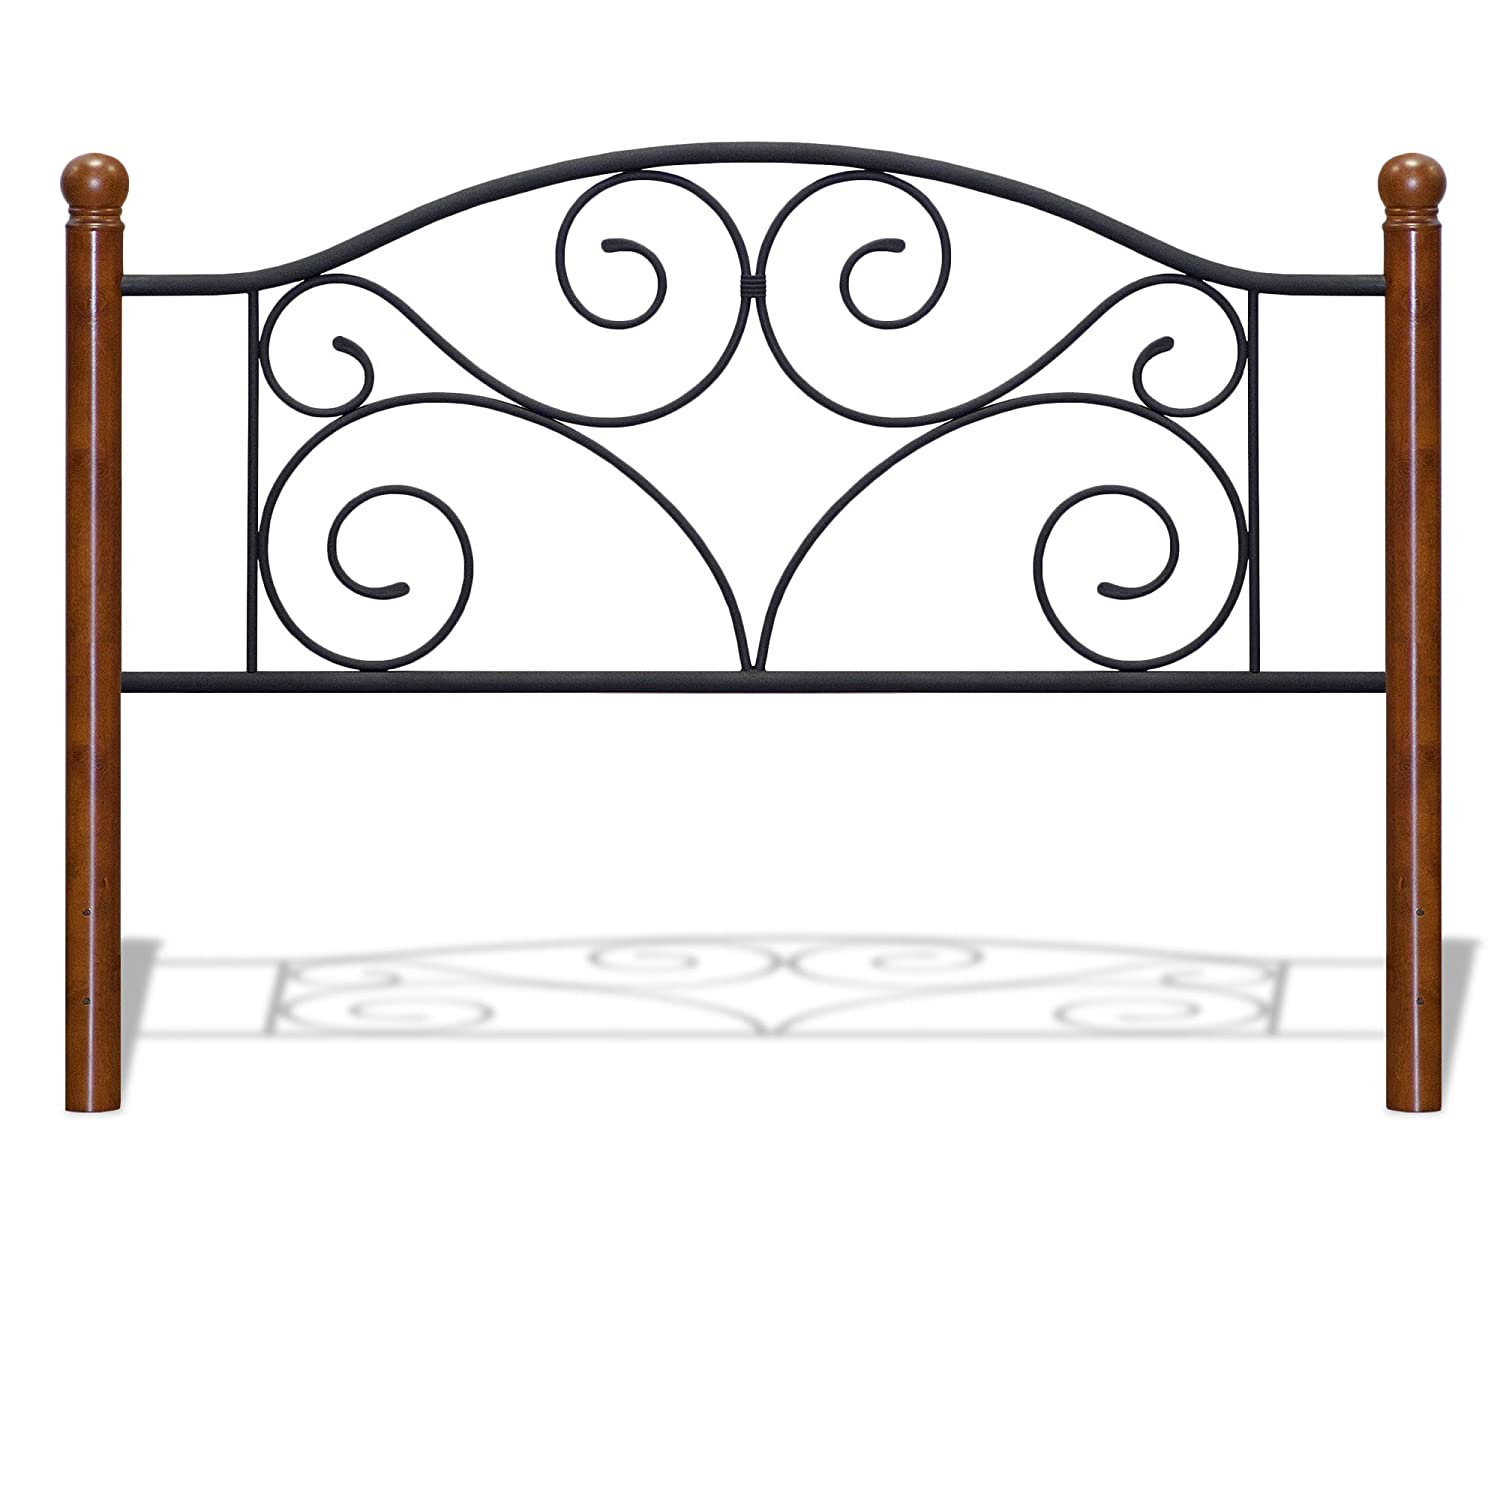 Twin Fashion Bed Group B92273 Doral Headboard with Dark Walnut Wood Posts and Metal Grill, Matte Black, Twin